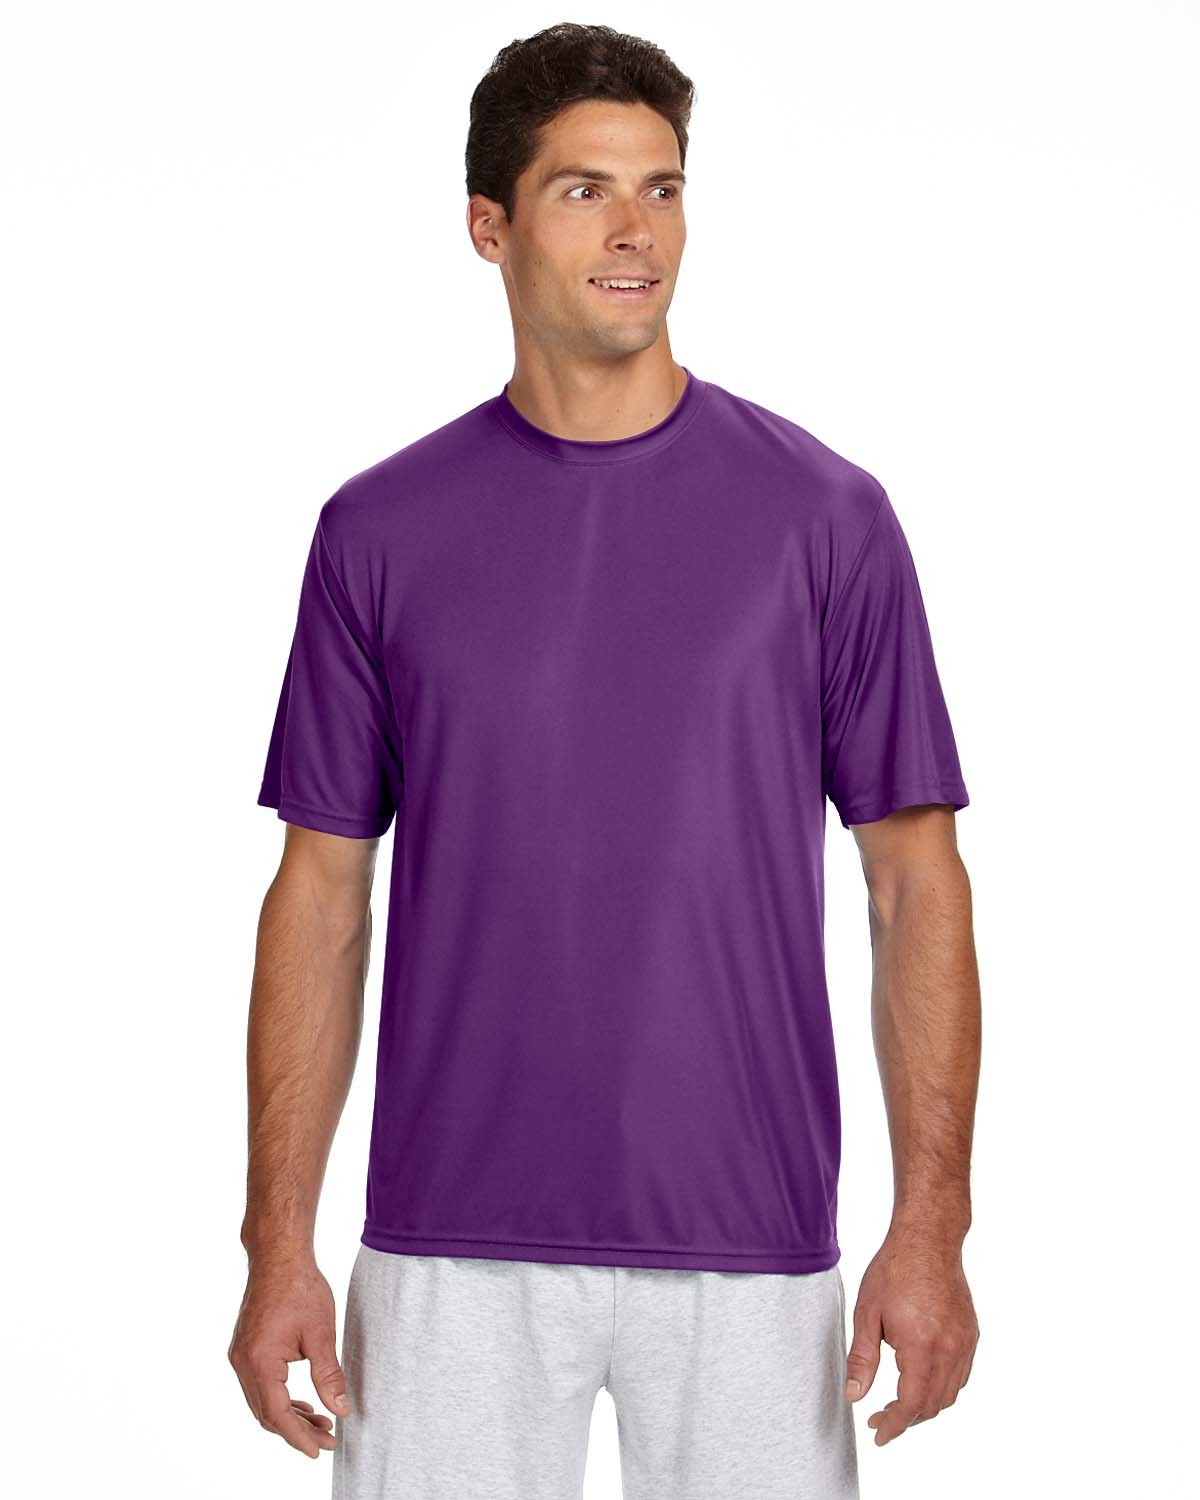 N3142 A4 Apparel PURPLE